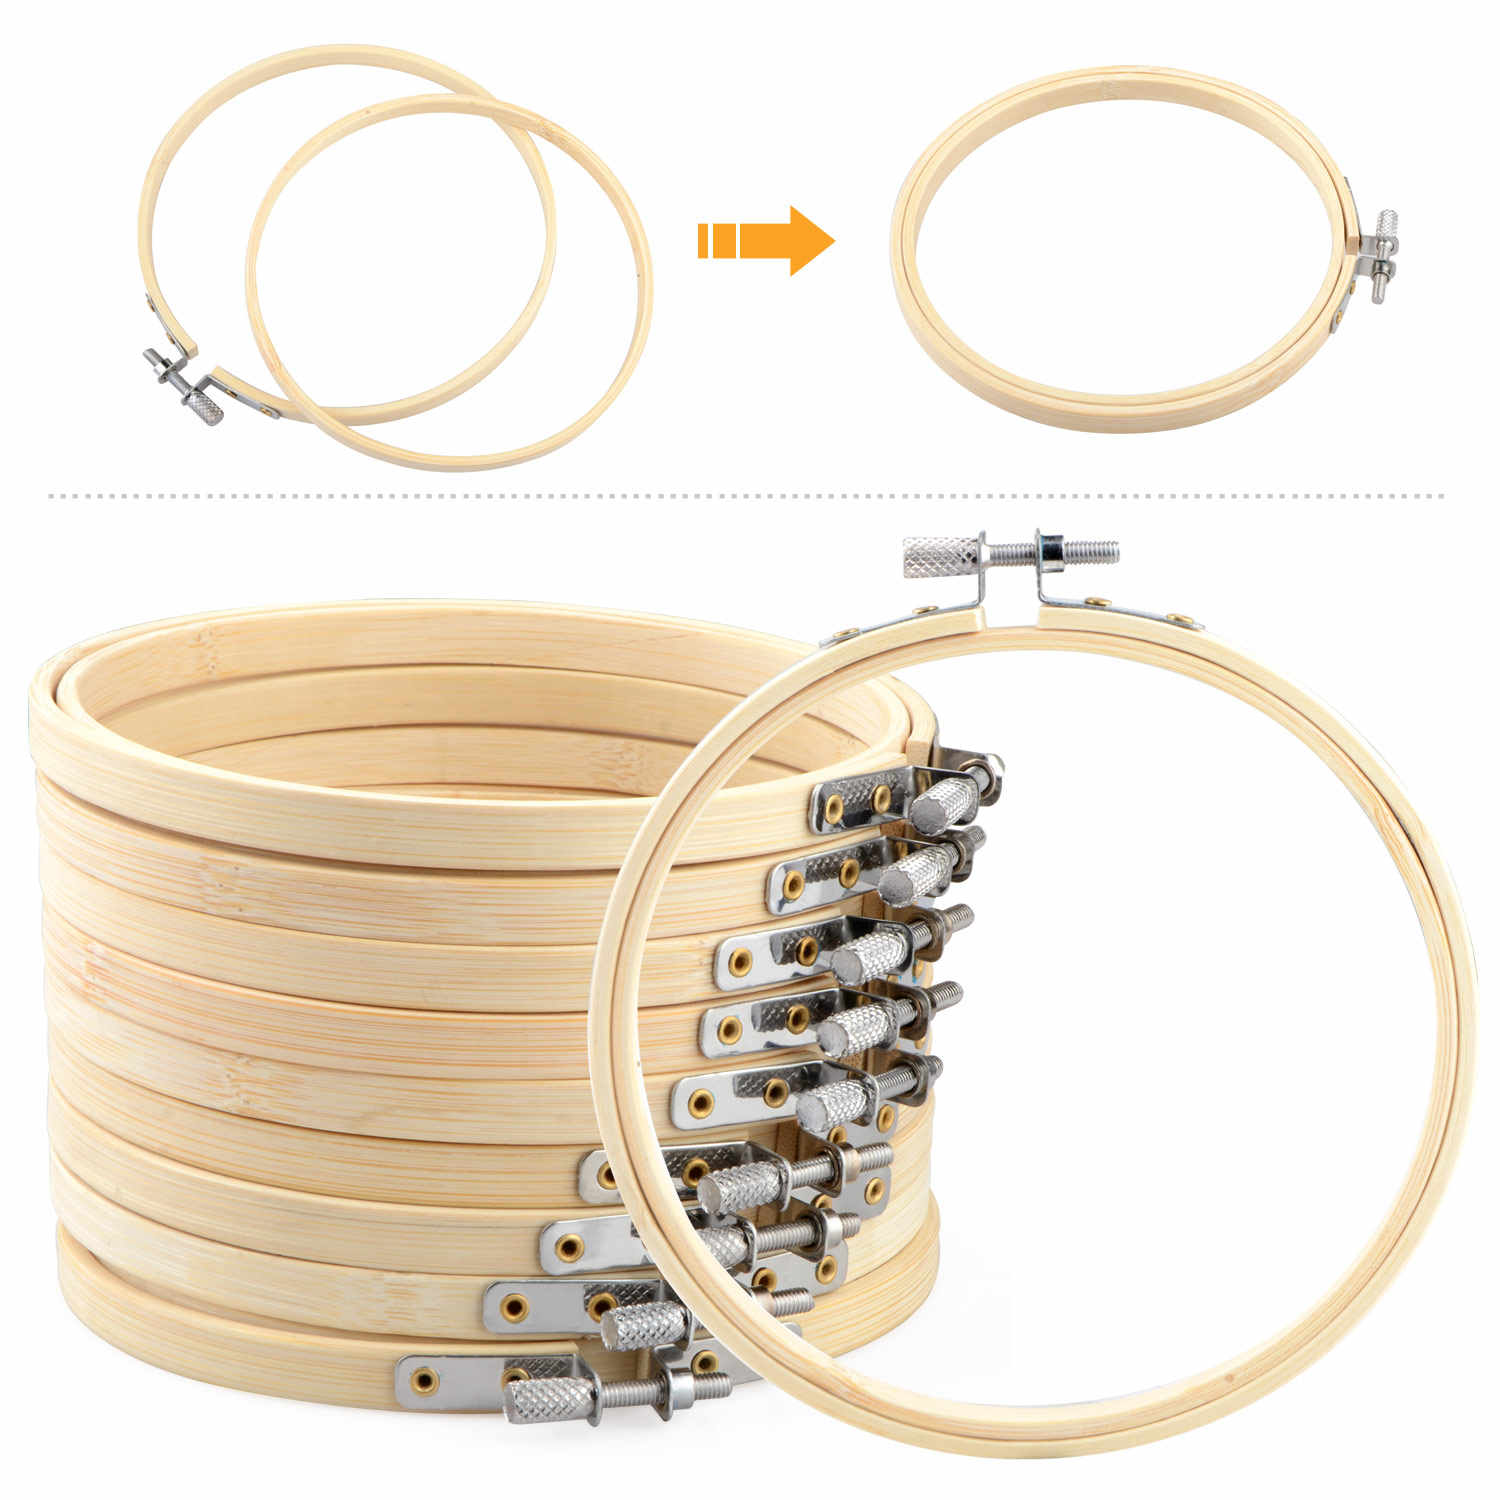 15pcs/set Manual DIY Wooden Embroidery Hoops Frame Set White Cotton Thick Embroidery Cloth Craft Tool